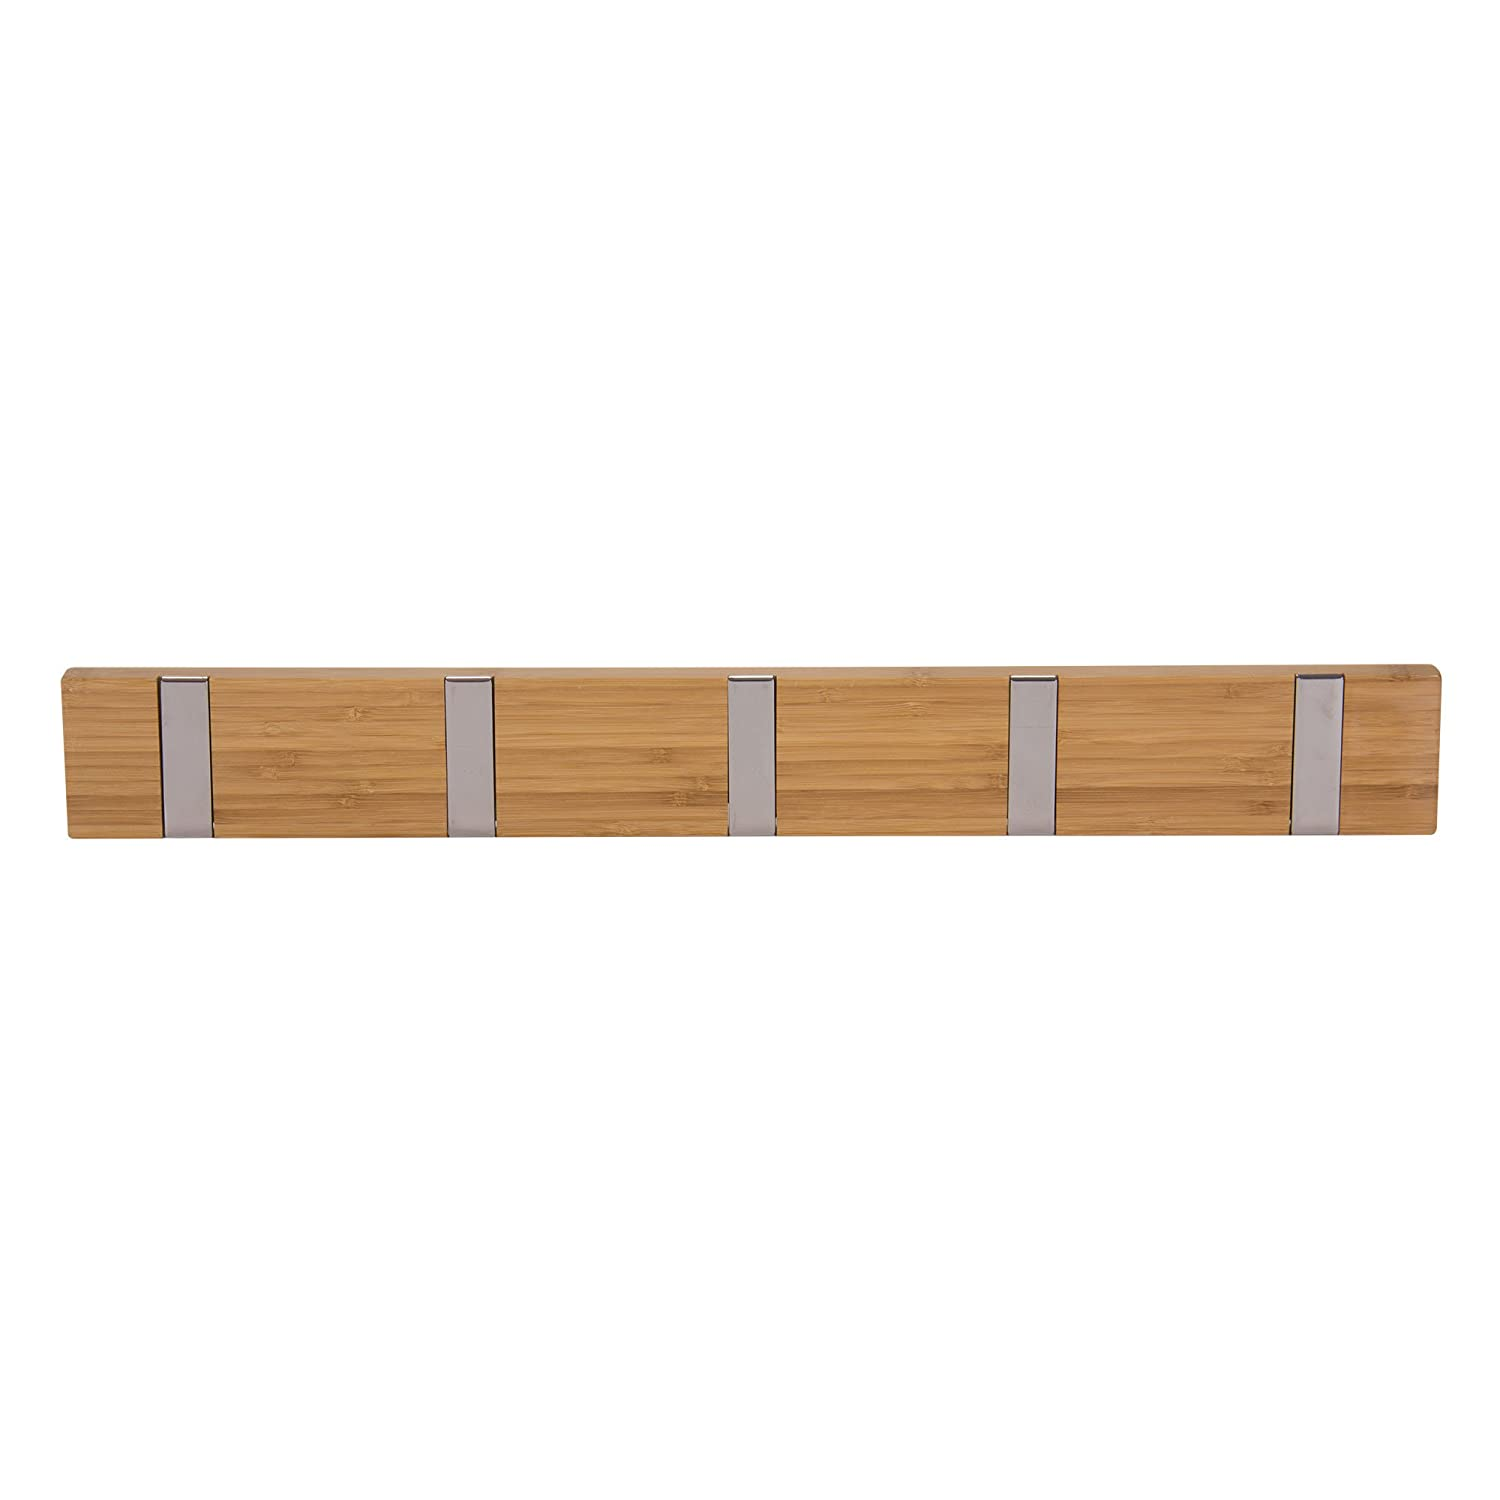 Household Essentials Bamboo 5-Hook Wall Coat-Hat Rack, Natural 2254-1